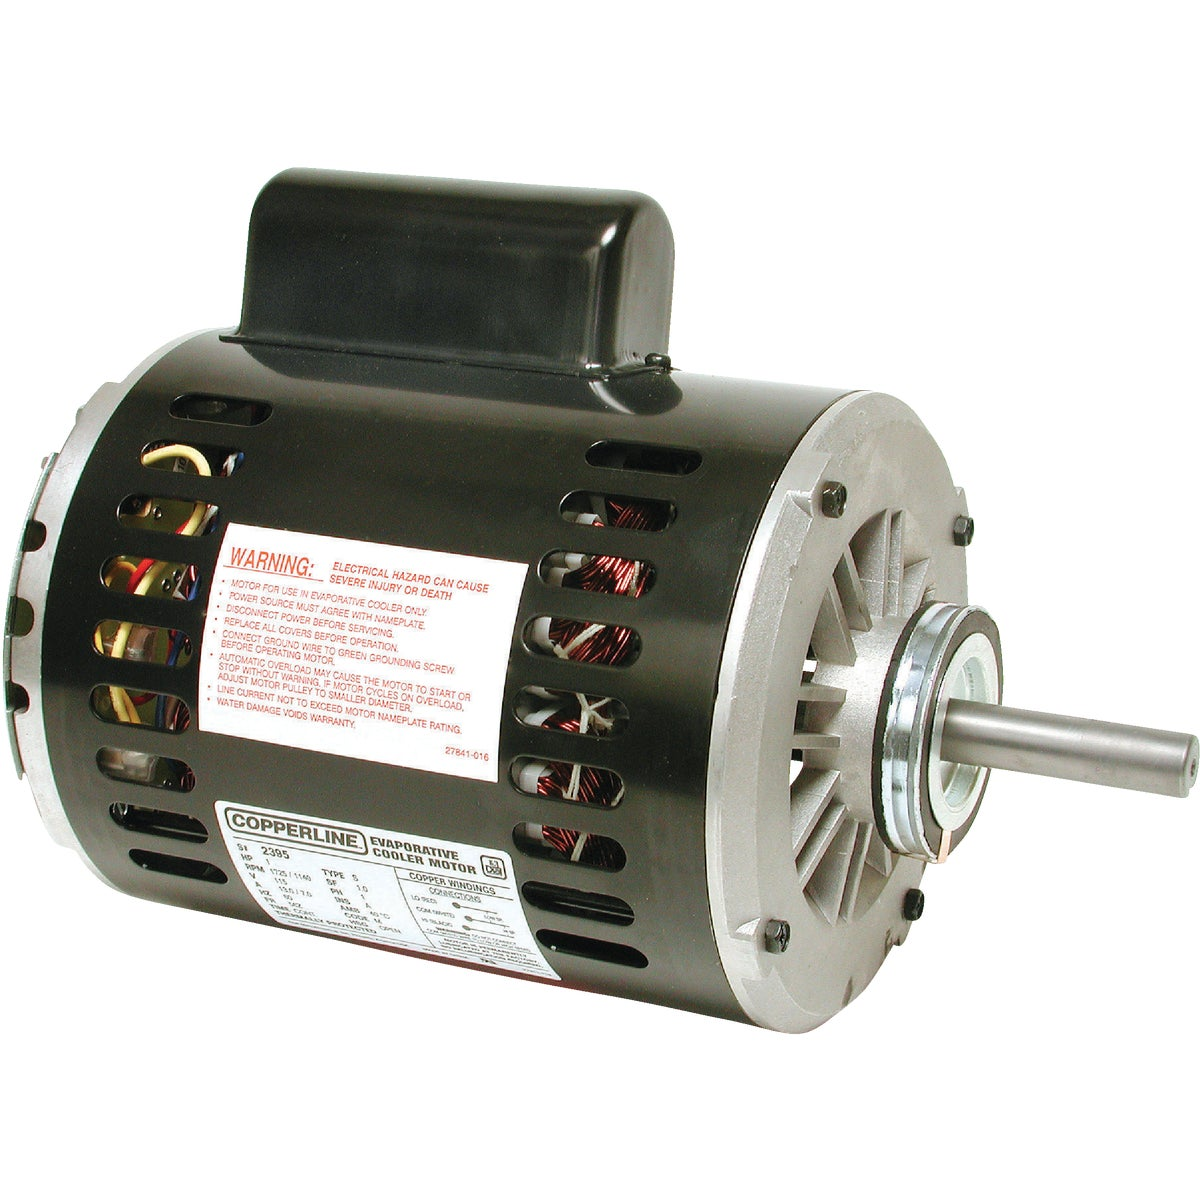 1 HP 2 SPEED MOTOR 115V - 2395 by Dial Manufacturing